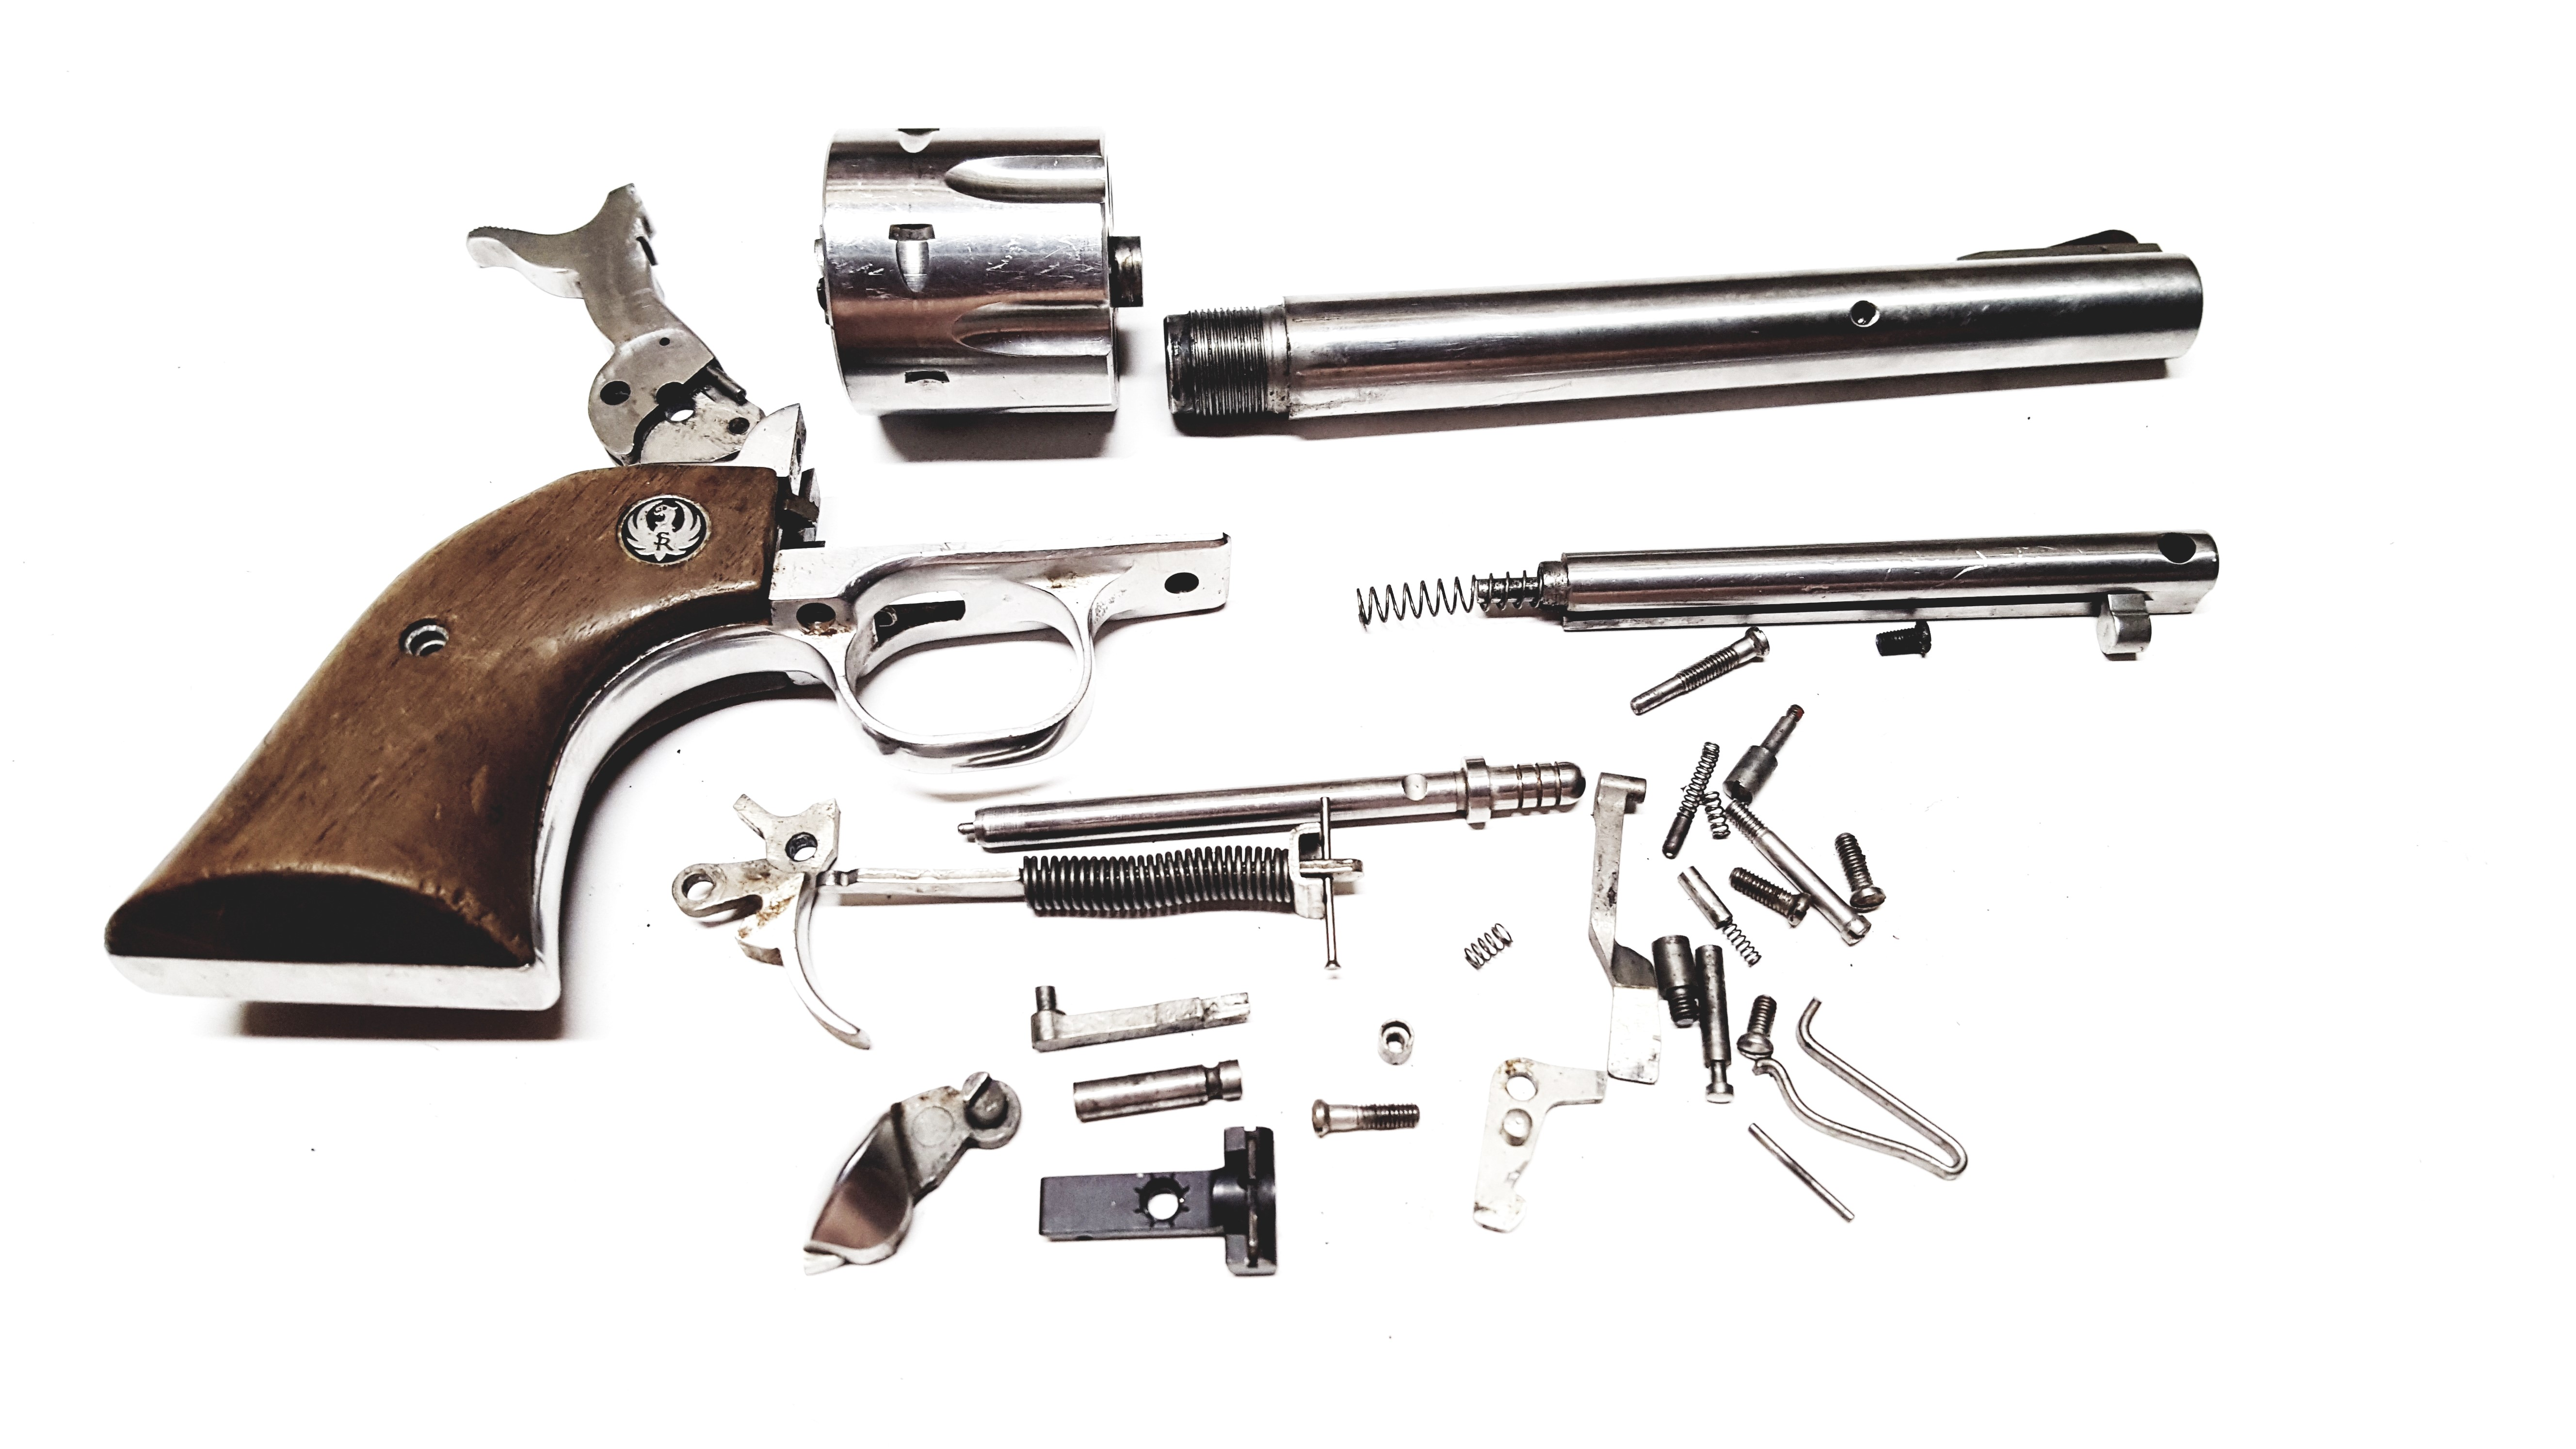 Ruger Blackhawk Pistol Parts Kit - Stainless - 357 Mag - No FFL Required